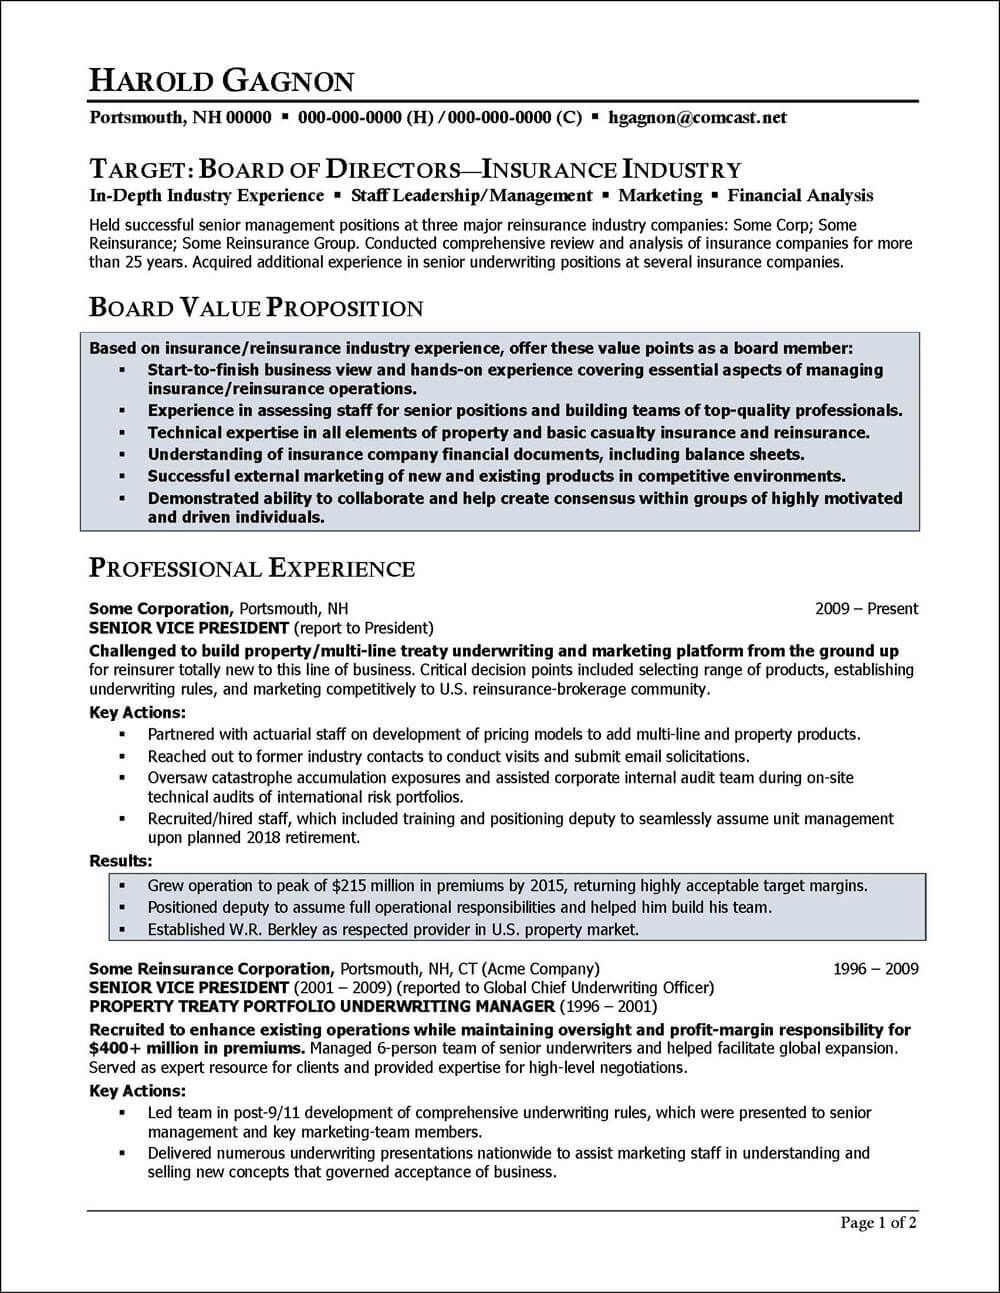 Example Of A Resume Written For An Insurance Industry Executive To